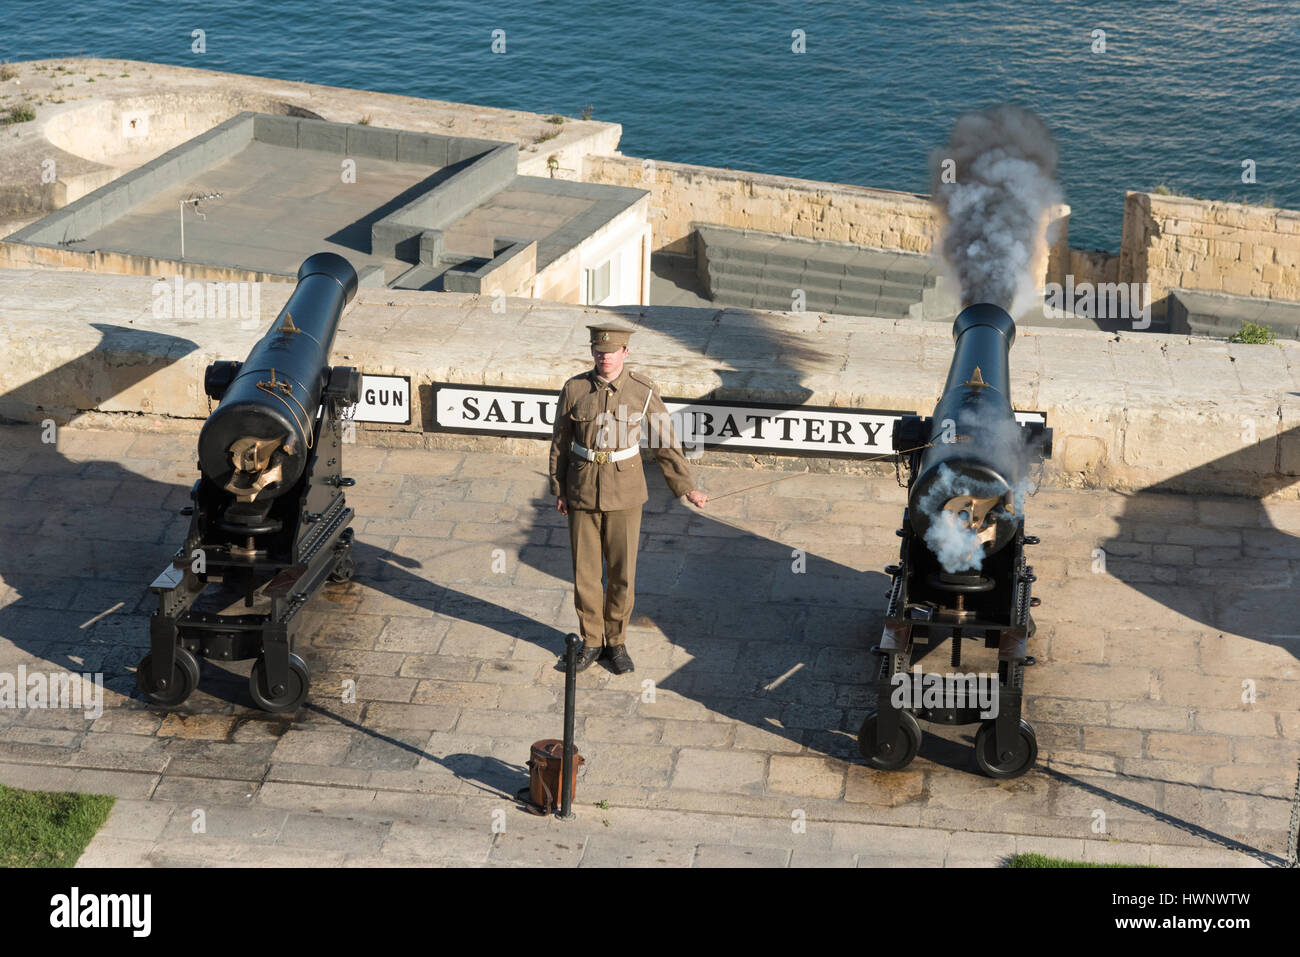 A soldier in uniform firing a canon at the saluting battery at Valetta Malta overlookingthe Grand Harbour for the - Stock Image